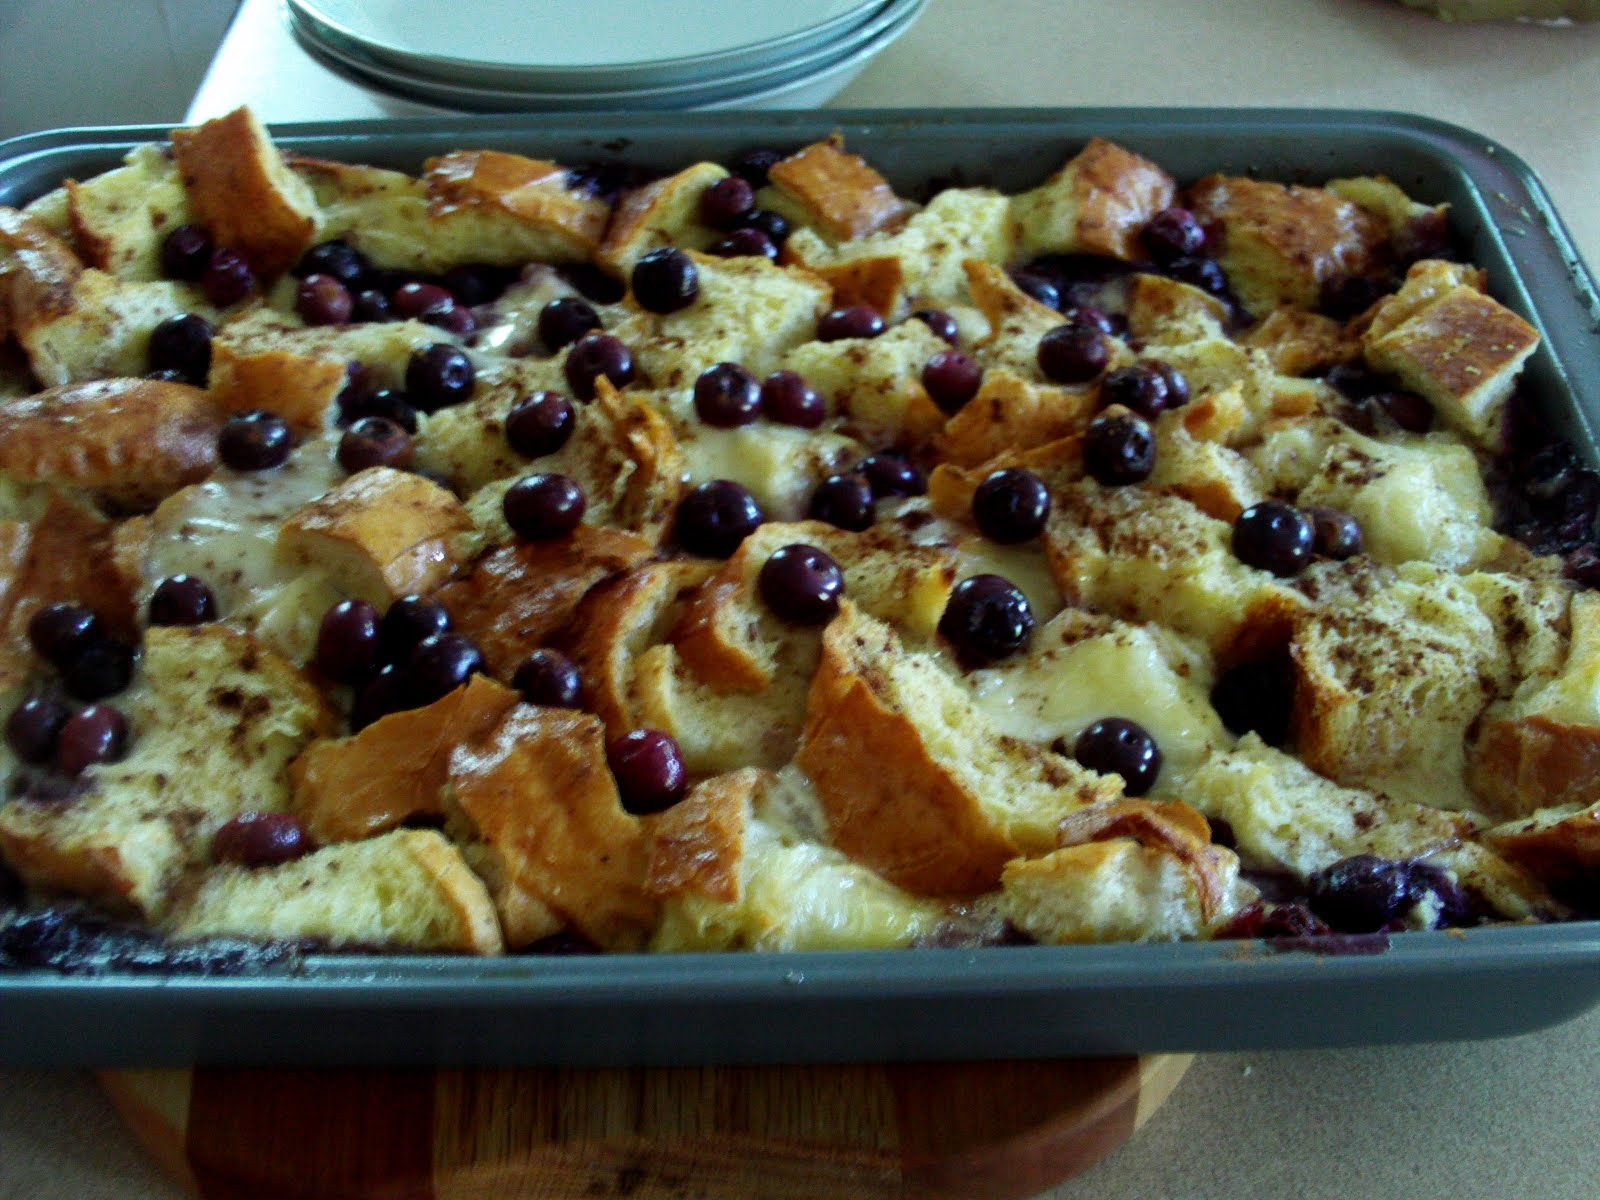 french toast blueberry baked french toast blueberry baked french toast ...